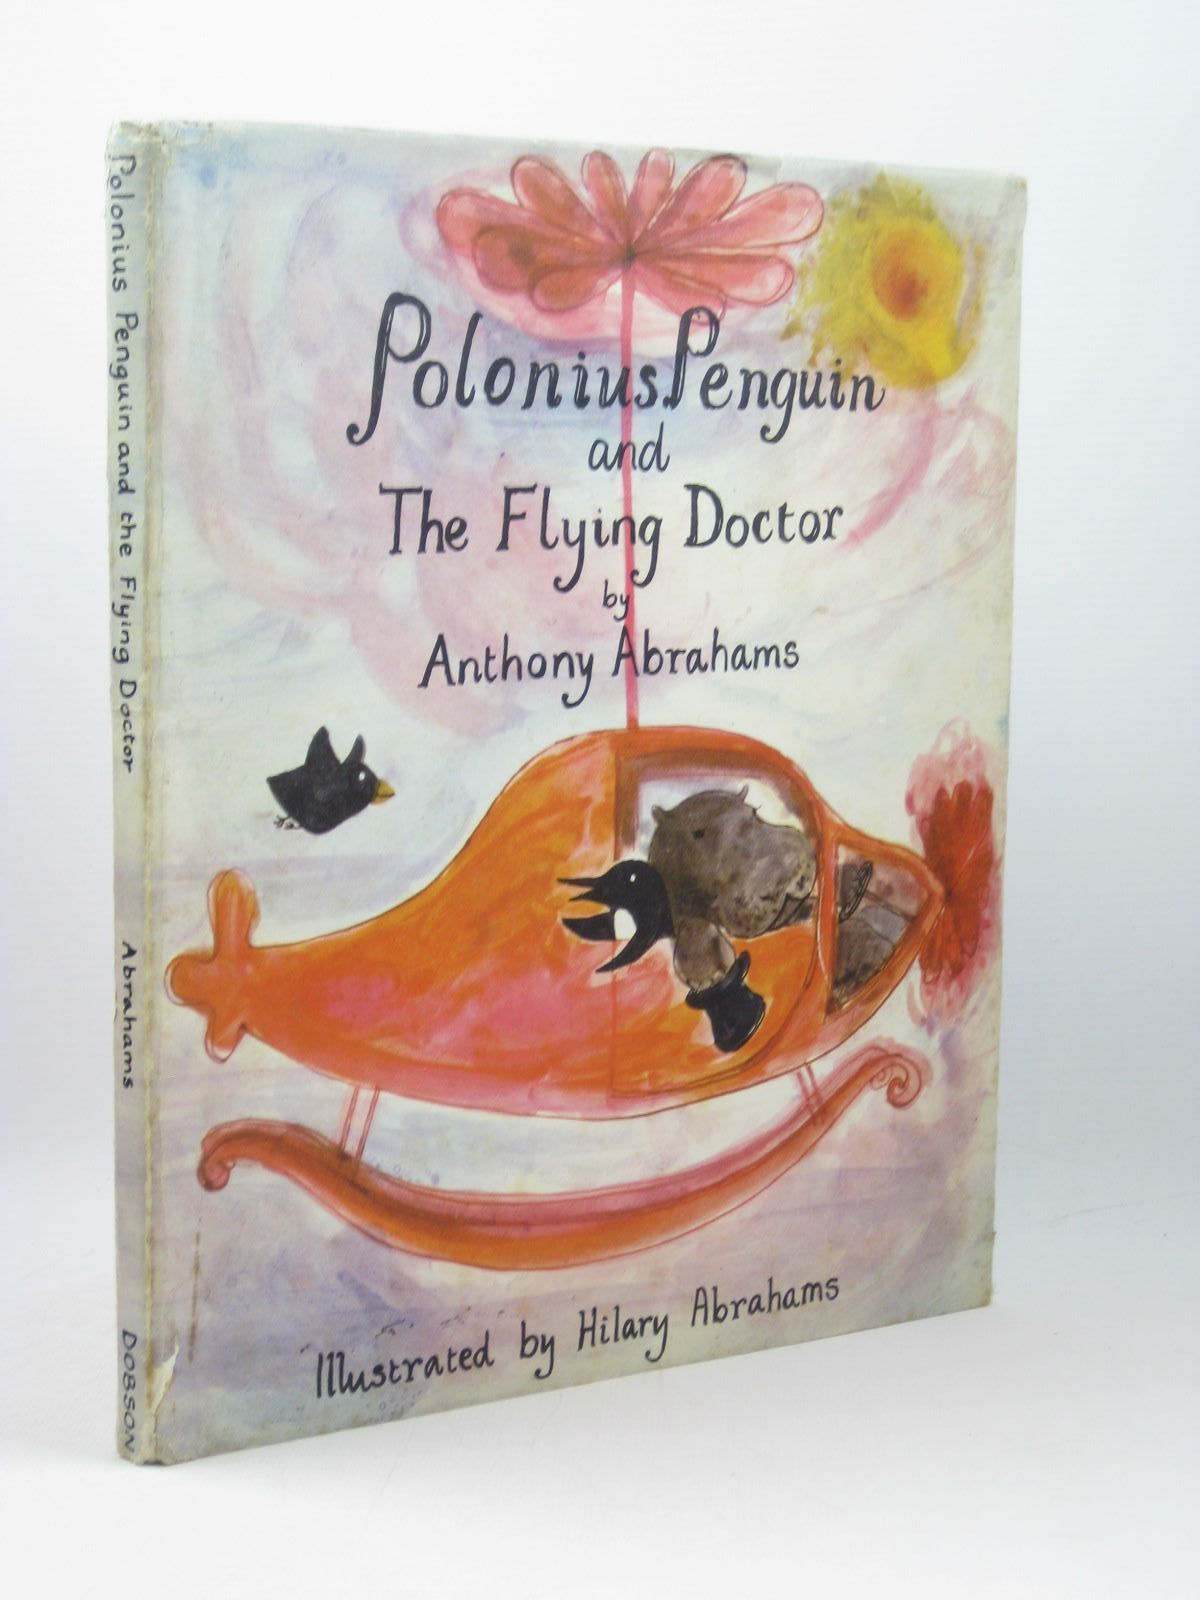 Photo of POLONIUS PENGUIN AND THE FLYING DOCTOR written by Abrahams, Anthony illustrated by Abrahams, Hilary published by Dobson Books Ltd. (STOCK CODE: 1312261)  for sale by Stella & Rose's Books